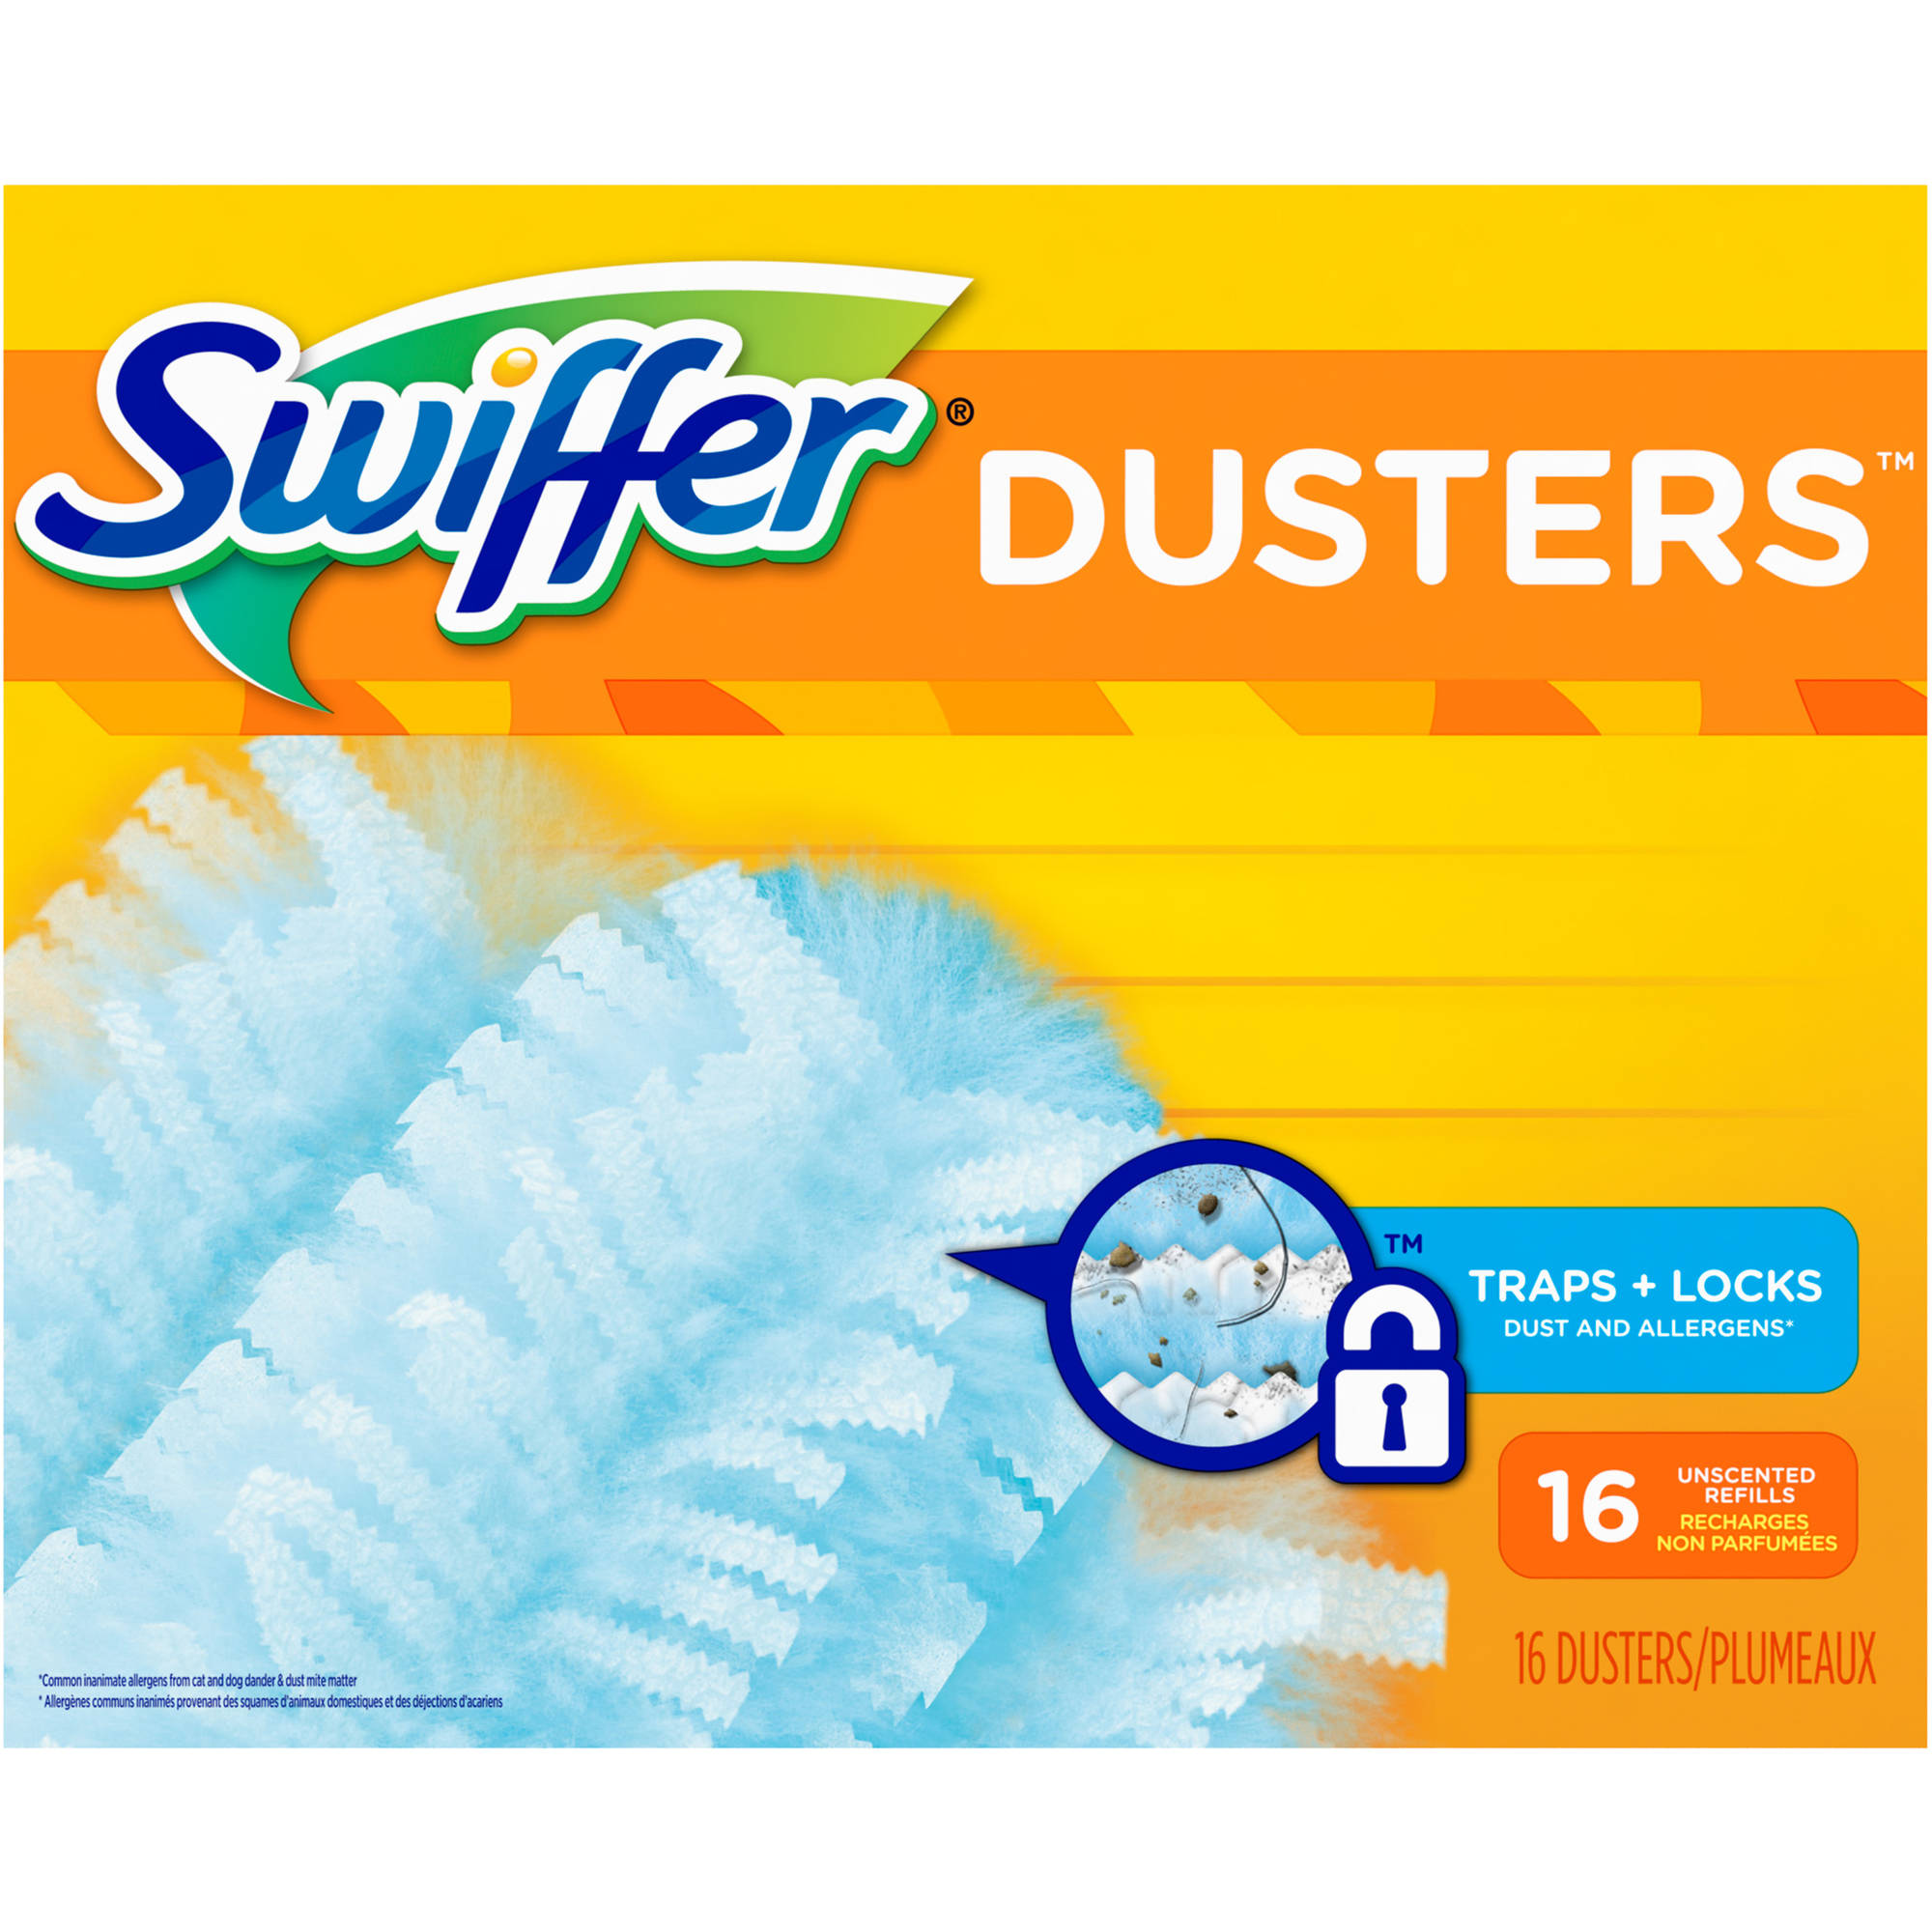 Swiffer Dusters Cleaner Refills Unscented, 16 count